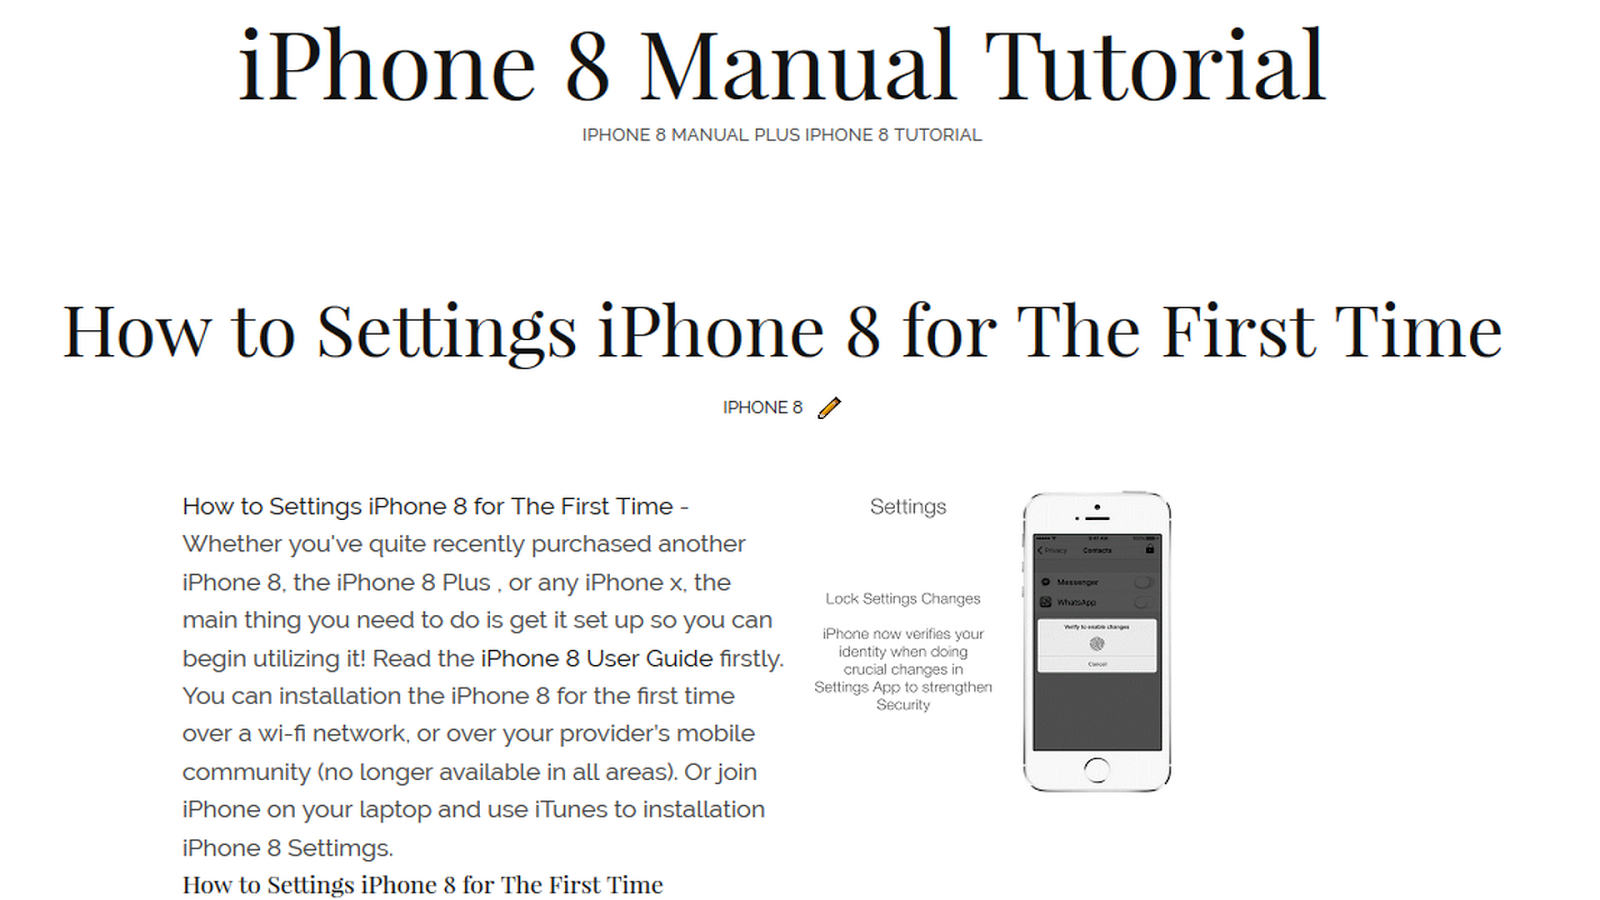 There Are 8 Manual Manual Guide